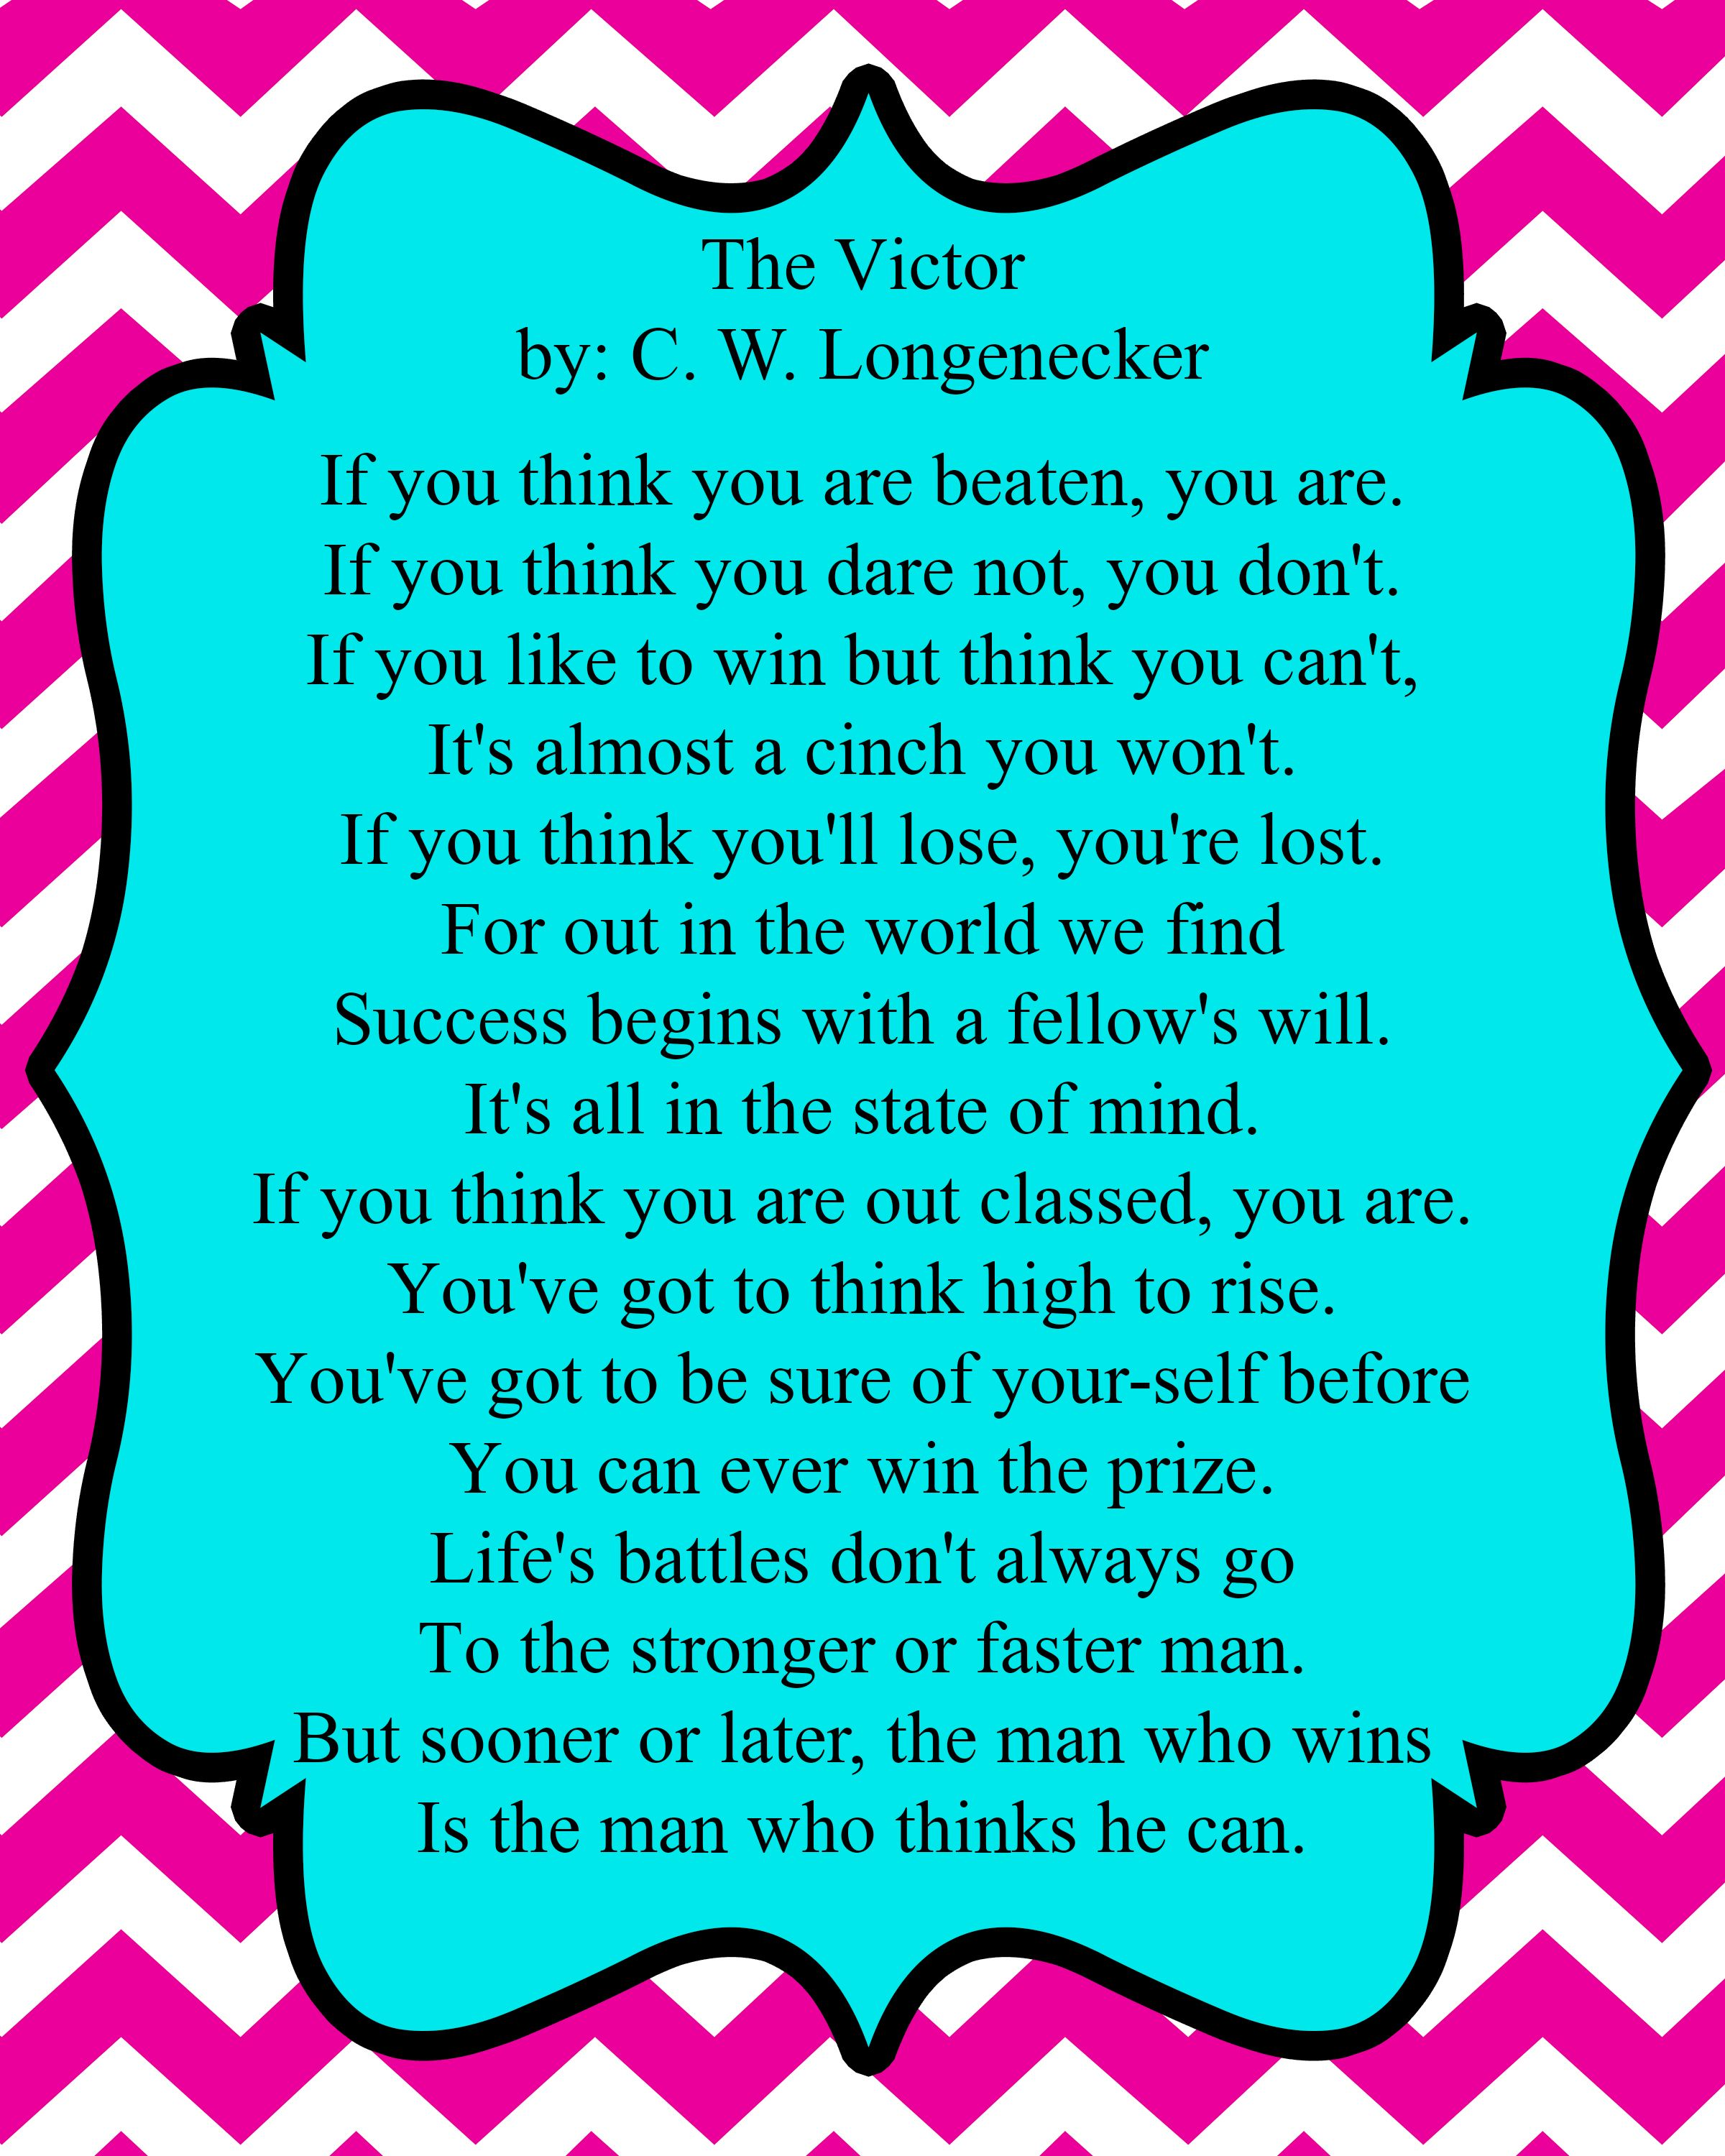 The Victor by C. W. Longenecker Inspirational Quotes